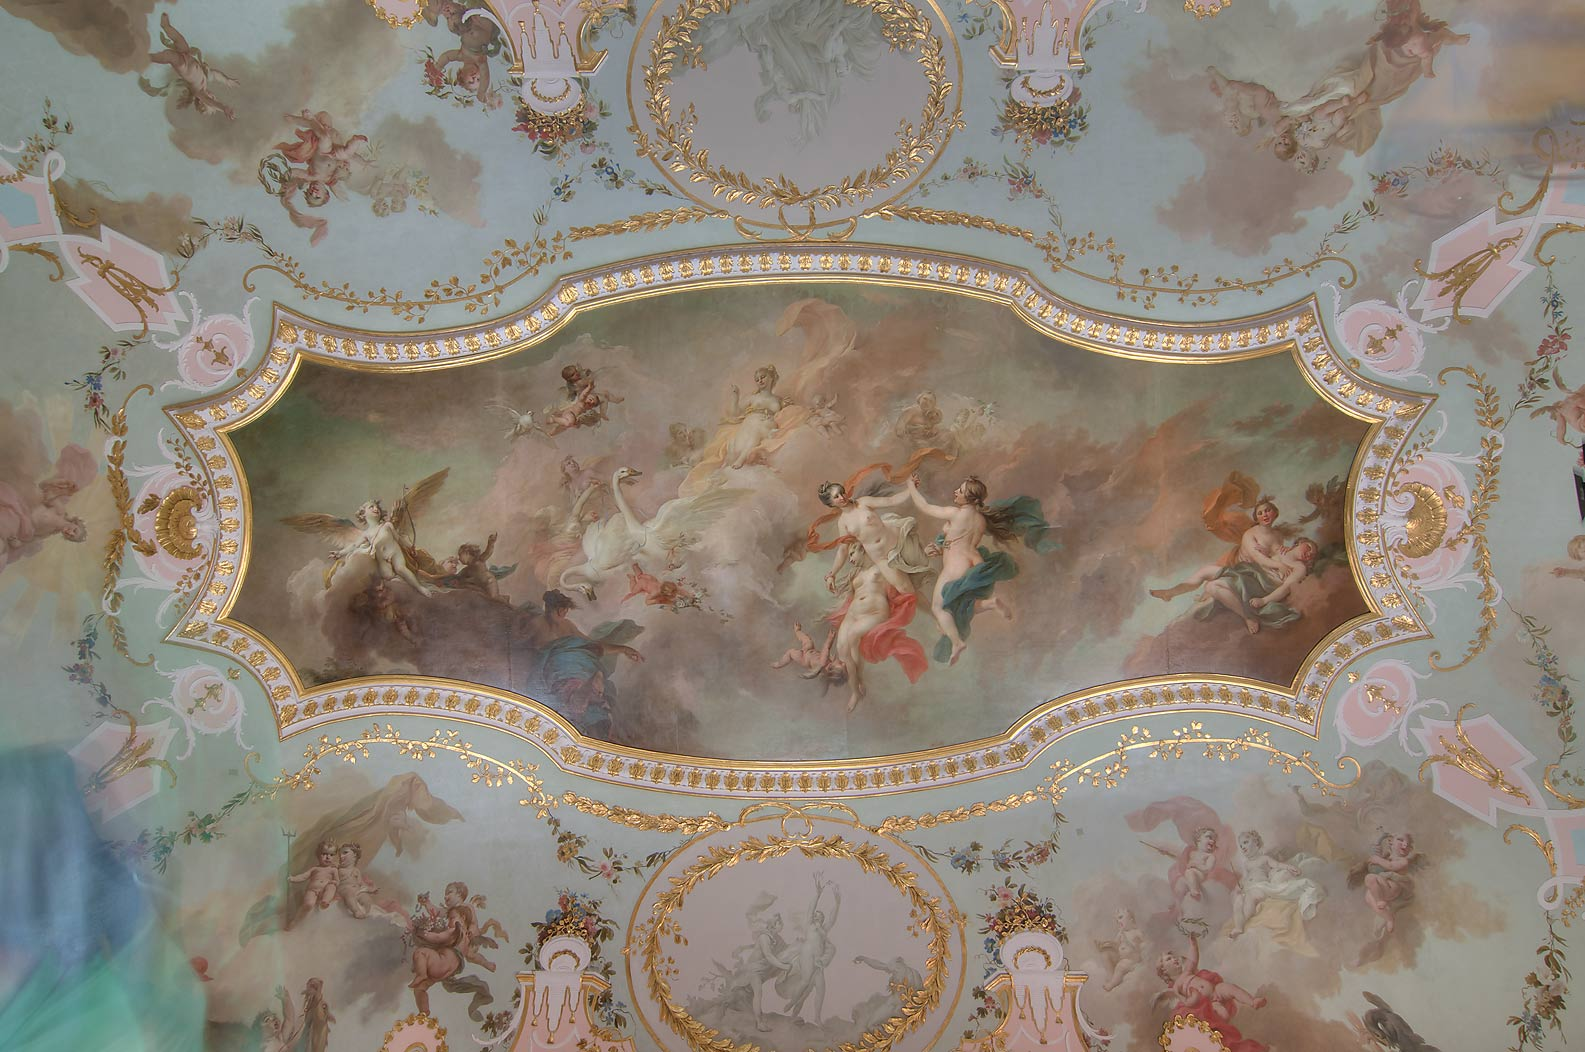 Ceiling of Chinese Palace. Oranienbaum (Lomonosov...miles west from St.Petersburg, Russia